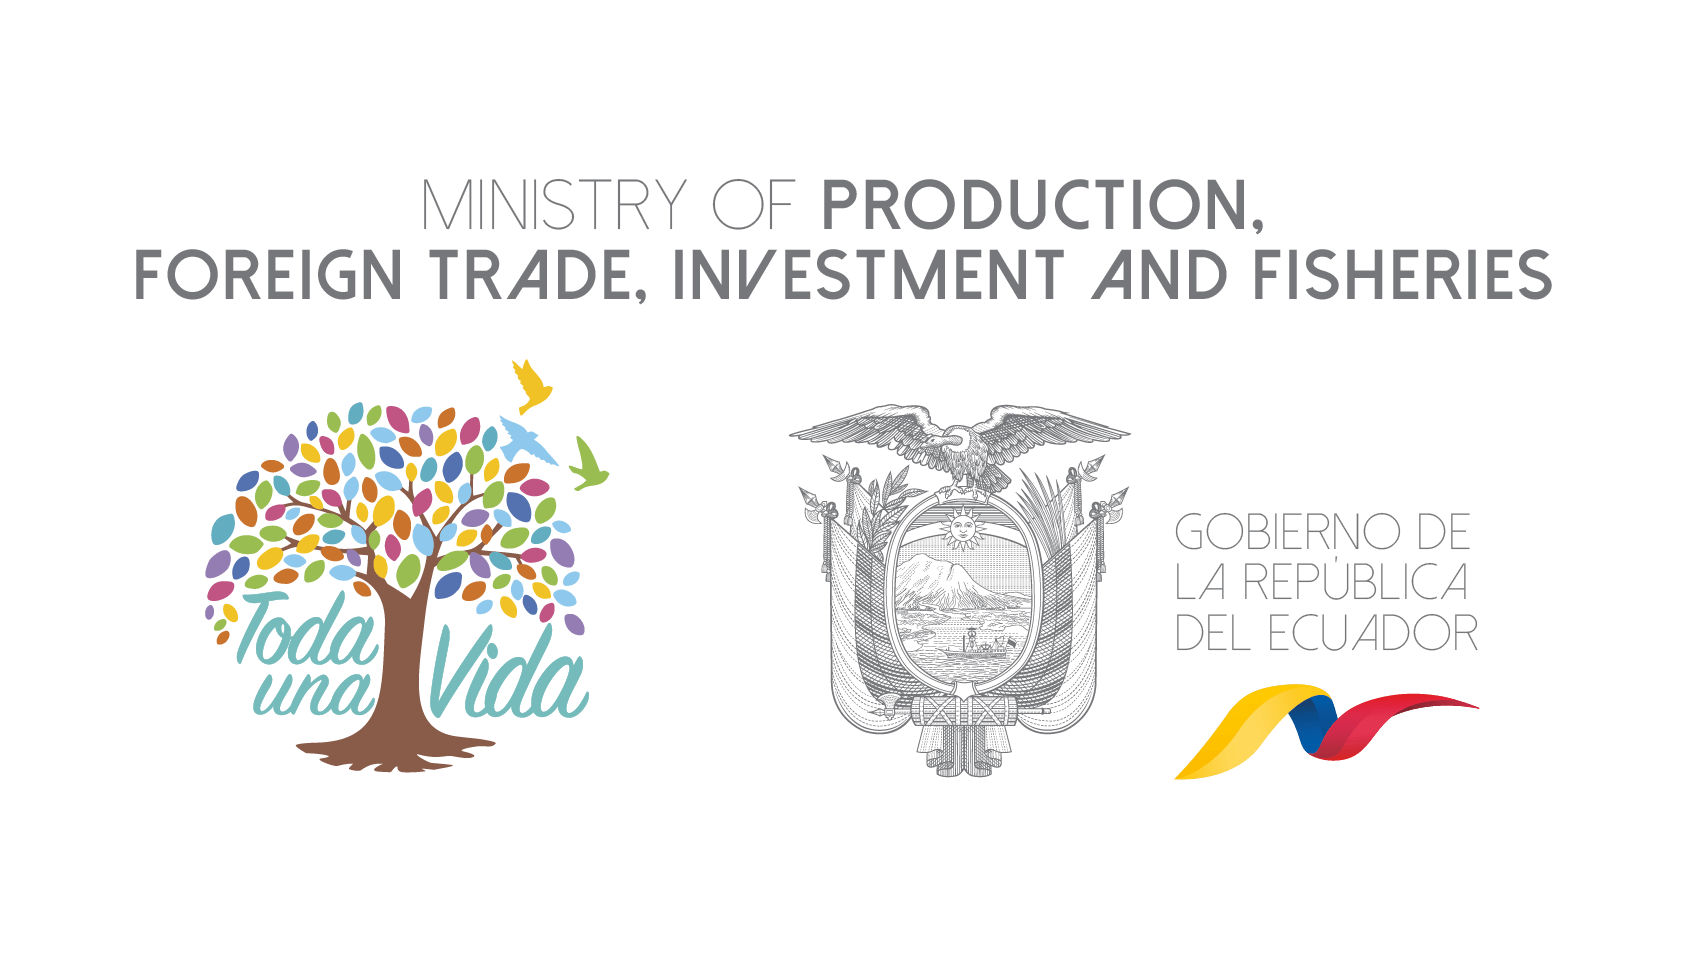 MINISTRY OF PRODUCTION, FOREIGN TRADE, INVESTMENT AND FISHERIES